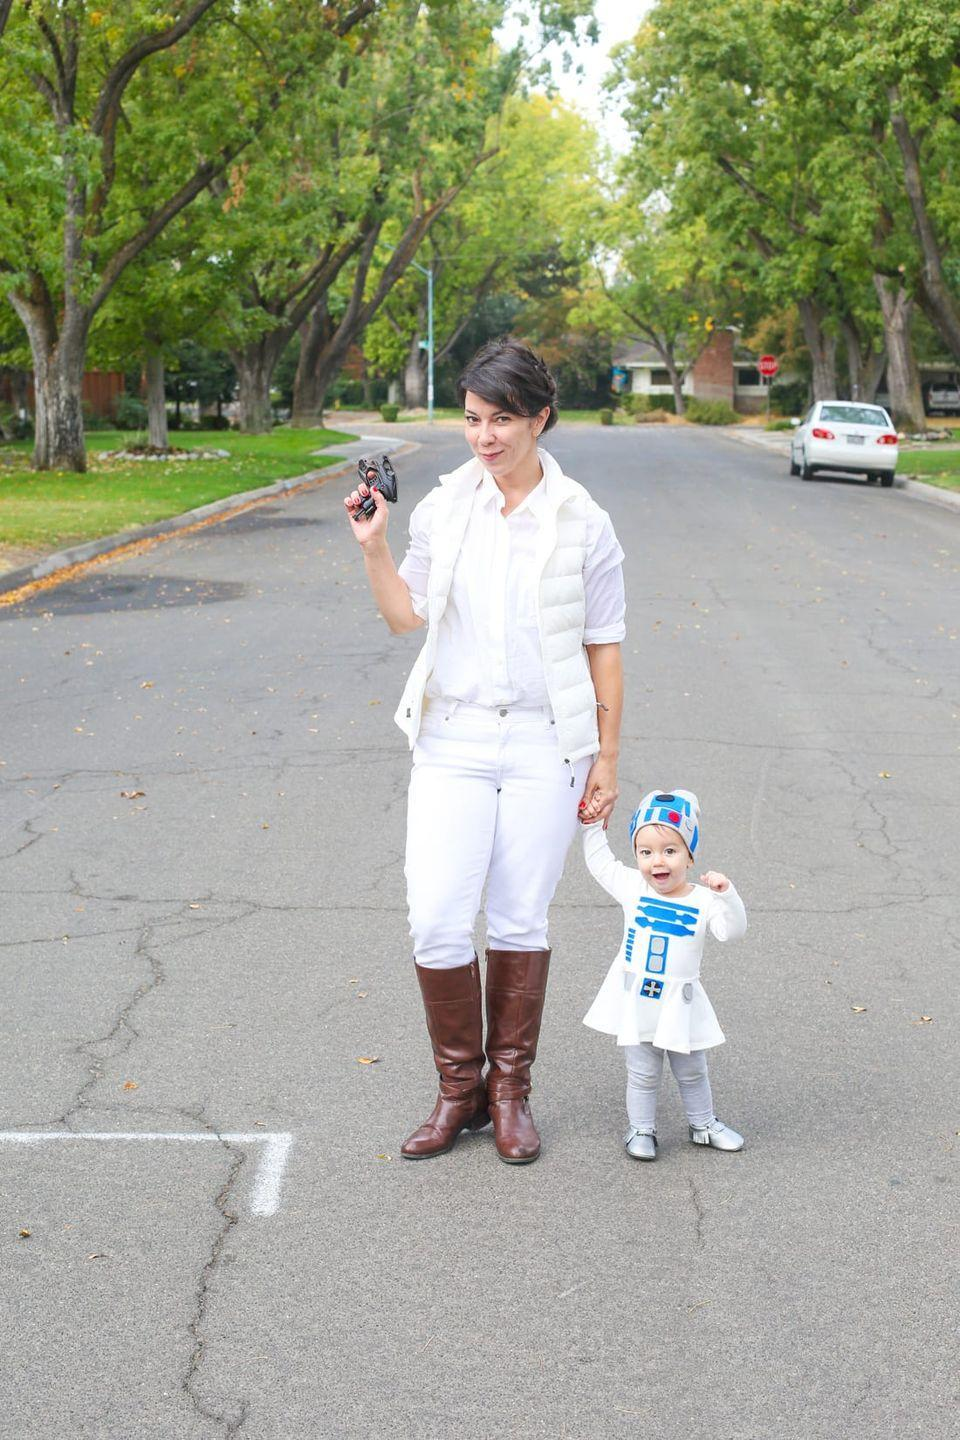 """<p>We're loving this easy (and cozy!) take on Princess Leia's signature look from <em>The Empire Strikes Back</em>. Accessorize with your tot dressed as an adorable R2-D2. </p><p><strong>Get the tutorial at <a href=""""https://lovelyindeed.com/how-to-make-a-family-star-wars-costume-for-halloween/"""" rel=""""nofollow noopener"""" target=""""_blank"""" data-ylk=""""slk:Lovely Indeed"""" class=""""link rapid-noclick-resp"""">Lovely Indeed</a>. </strong></p><p><strong><a class=""""link rapid-noclick-resp"""" href=""""https://www.amazon.com/XPOSURZONE-Packable-Lightweight-Outdoor-Puffer/dp/B01D34Q2NI/?tag=syn-yahoo-20&ascsubtag=%5Bartid%7C10050.g.21287723%5Bsrc%7Cyahoo-us"""" rel=""""nofollow noopener"""" target=""""_blank"""" data-ylk=""""slk:SHOP WHITE VESTS"""">SHOP WHITE VESTS</a><br></strong></p>"""